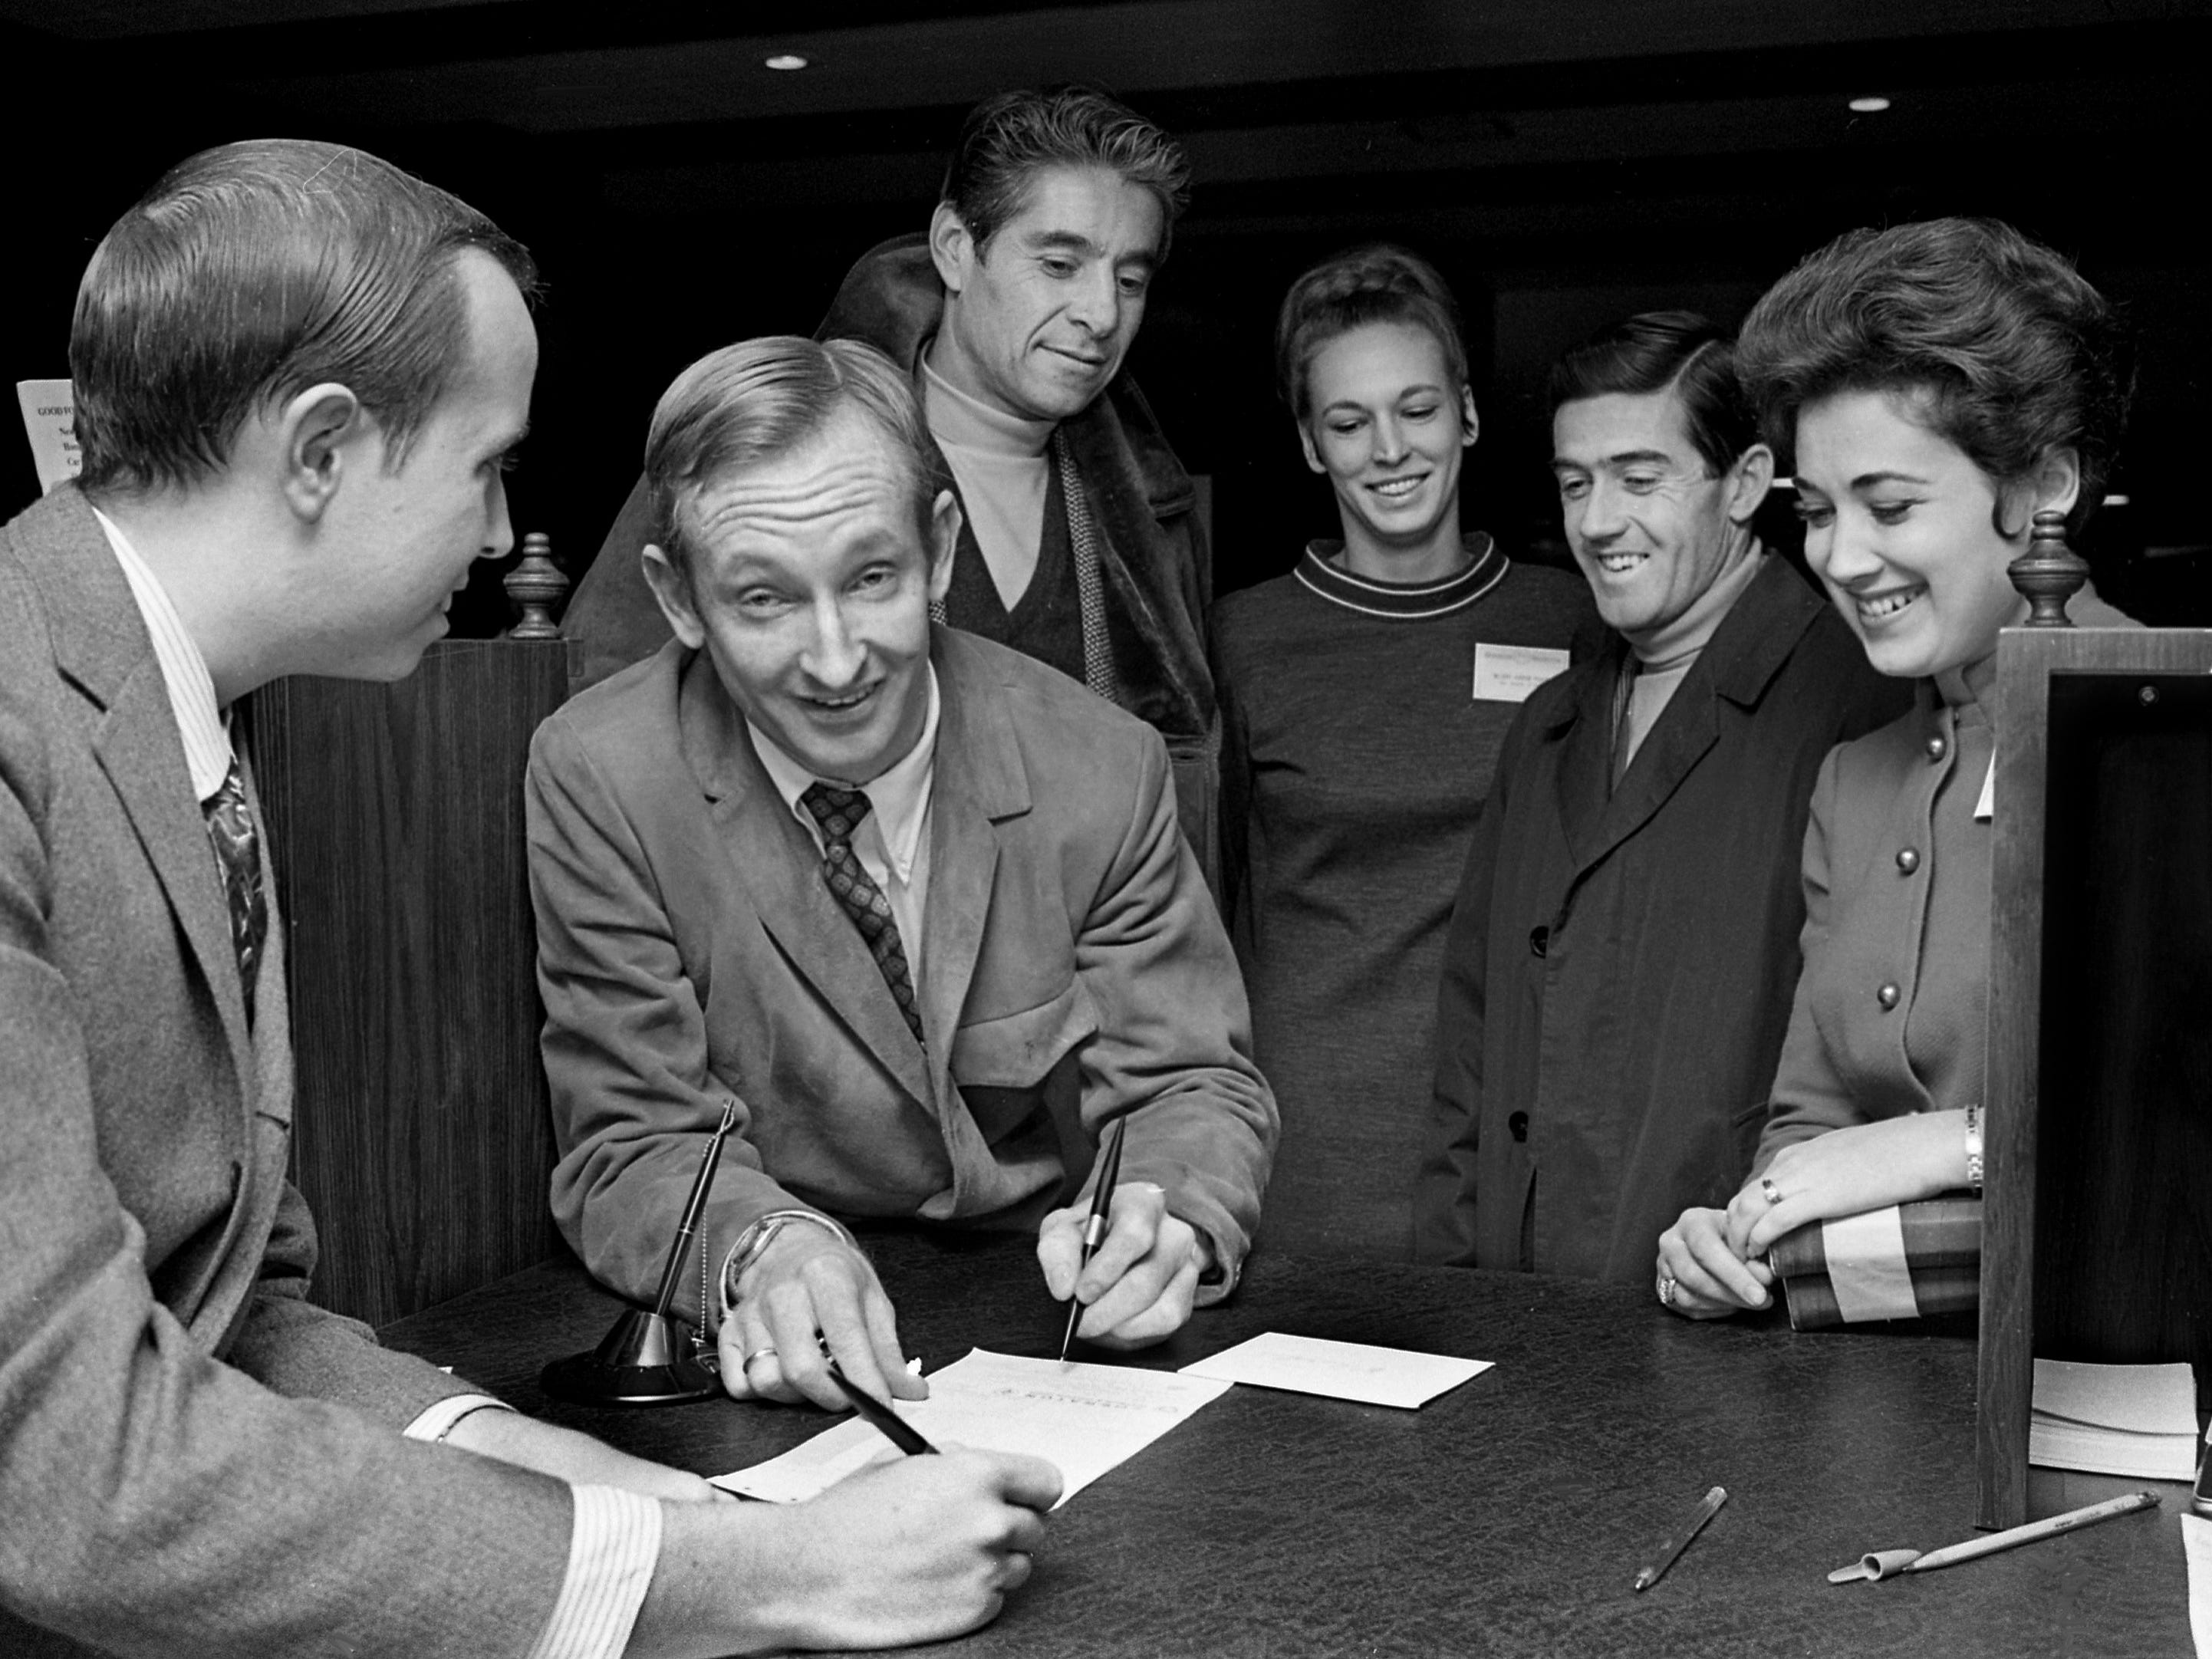 Host David Stone, left, helps Rod Laver, the world's top-ranked tennis player, to sign in at the new Sheraton Motor Inn on Dec. 5, 1968, while players Pancho Gonzales and Ken Rosewall, second from right, wait their turn as hostesses Ellen Tune, third from right, and Carolyn Wallace, right, look on. They were in Nashville for the Dixie Tennis Classic indoor championship at Vanderbilt's Memorial Gym.